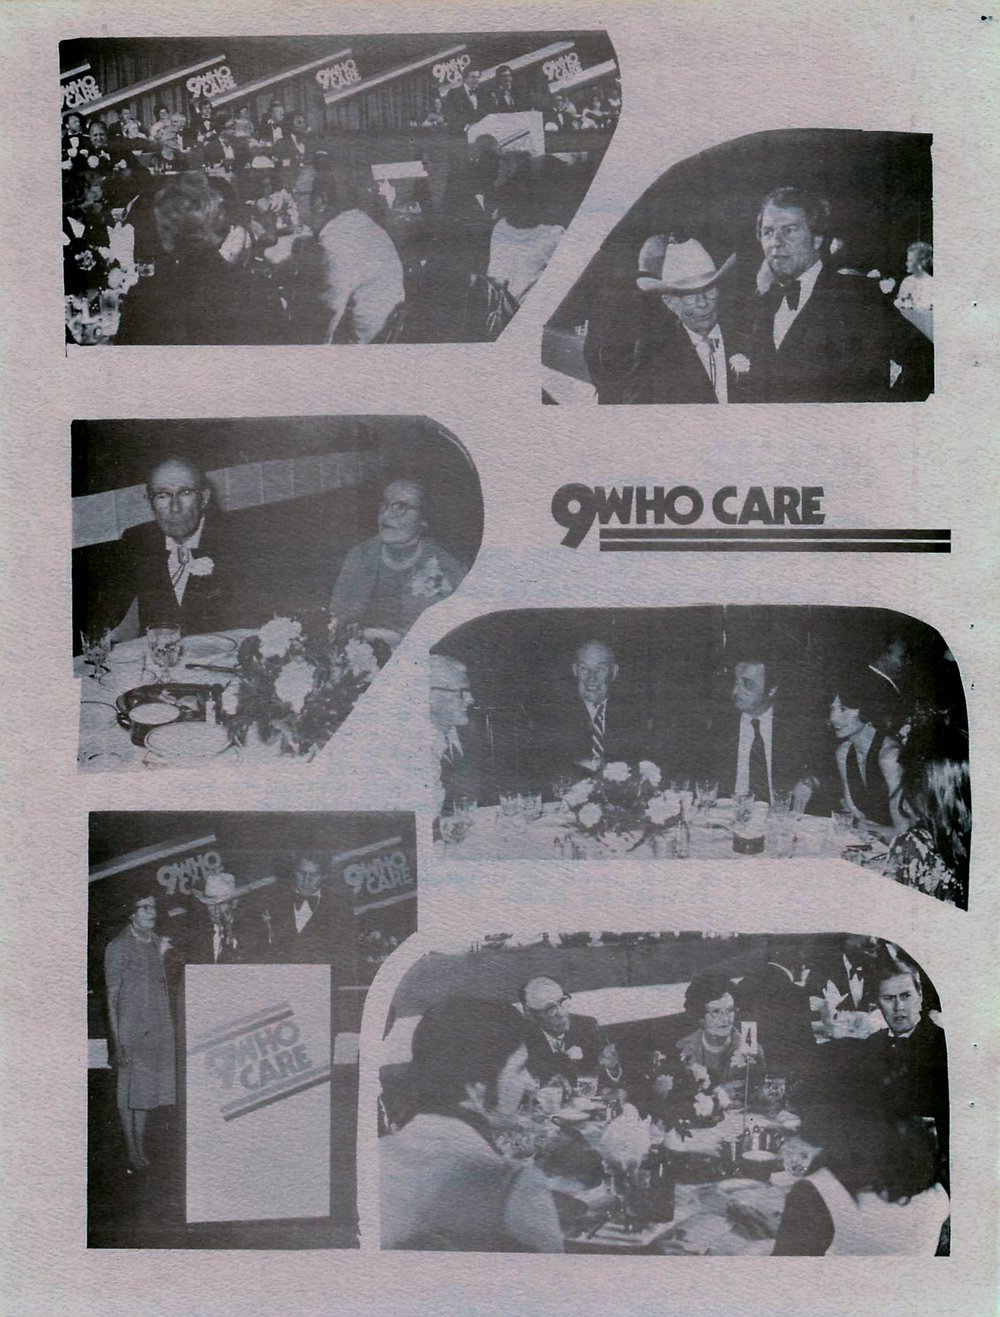 9 Who Care Award 1979_Page_12.jpg